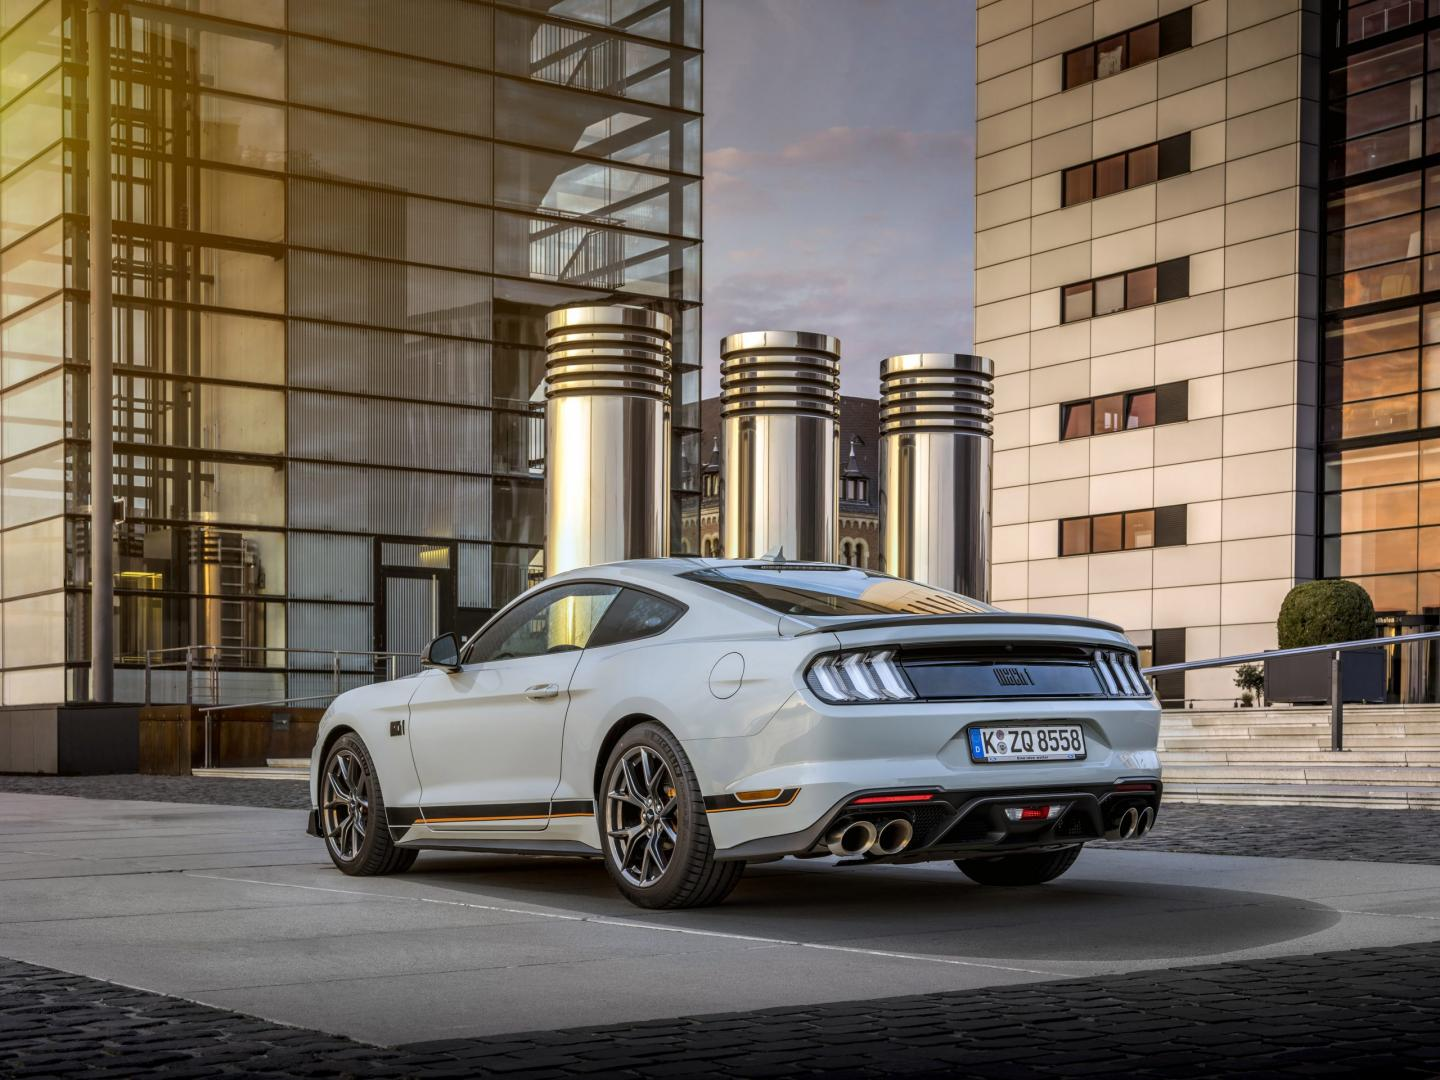 Ford Mustang Mach 1 in Nederland (2021)